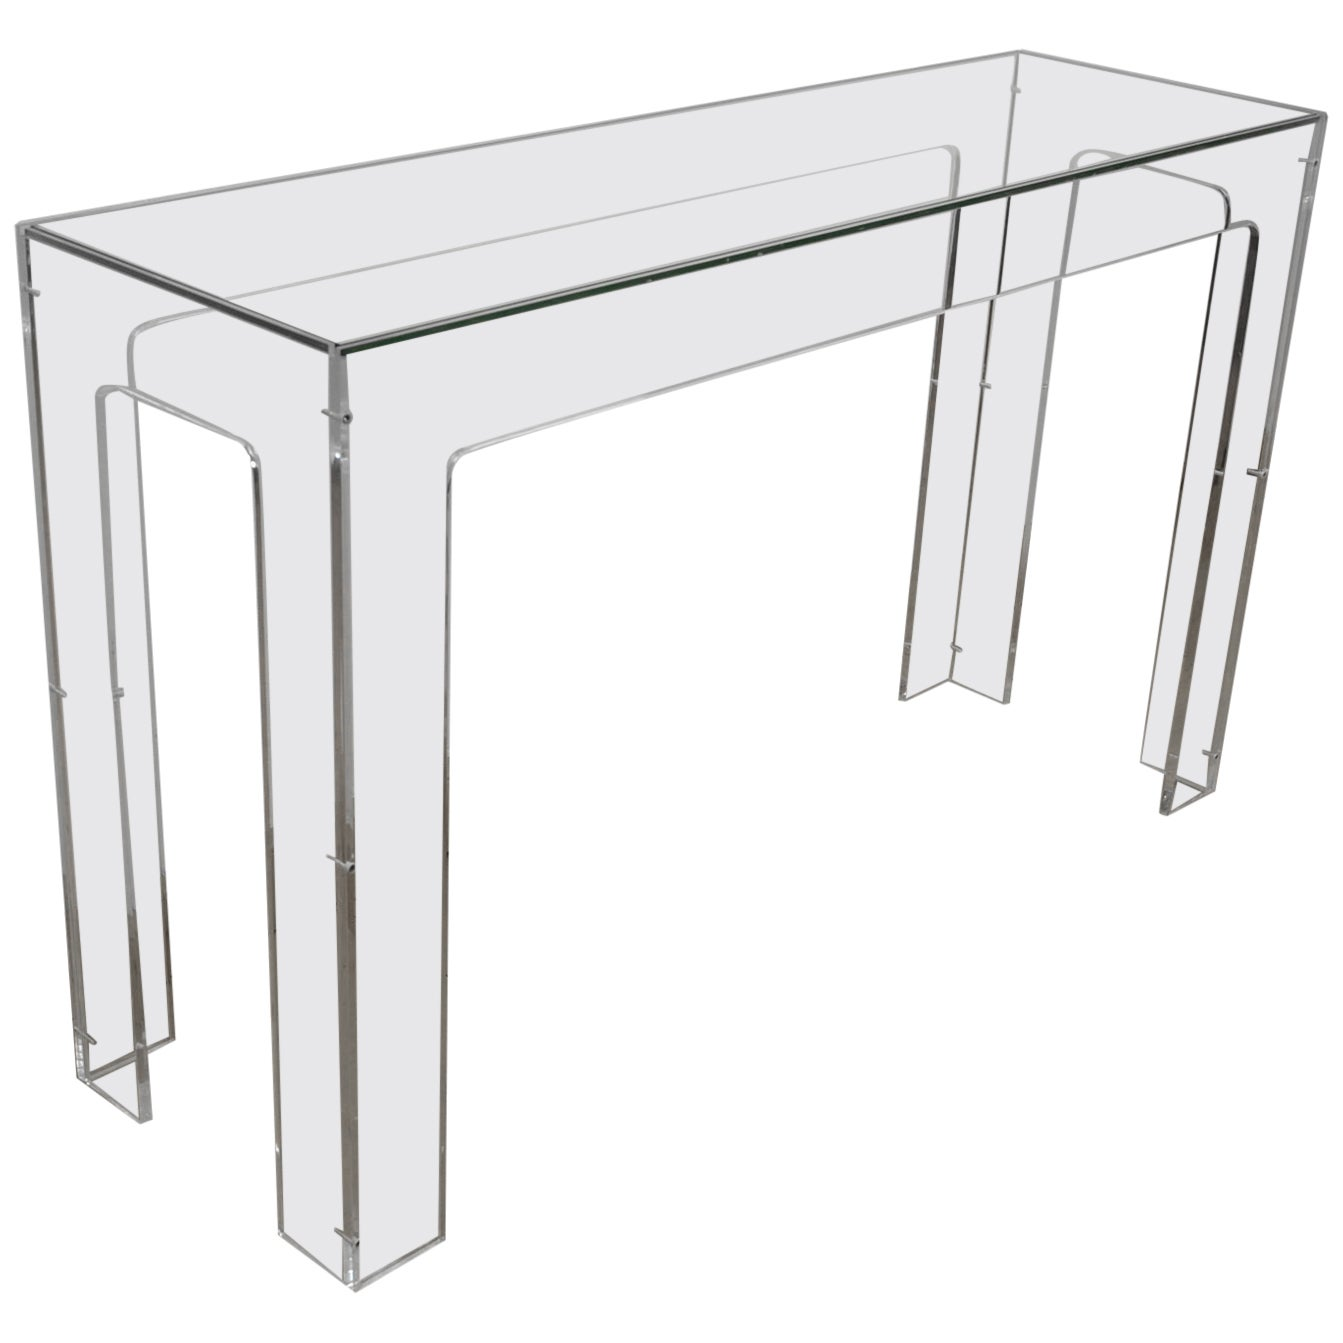 1970s Lucite Console Table with Glass Top